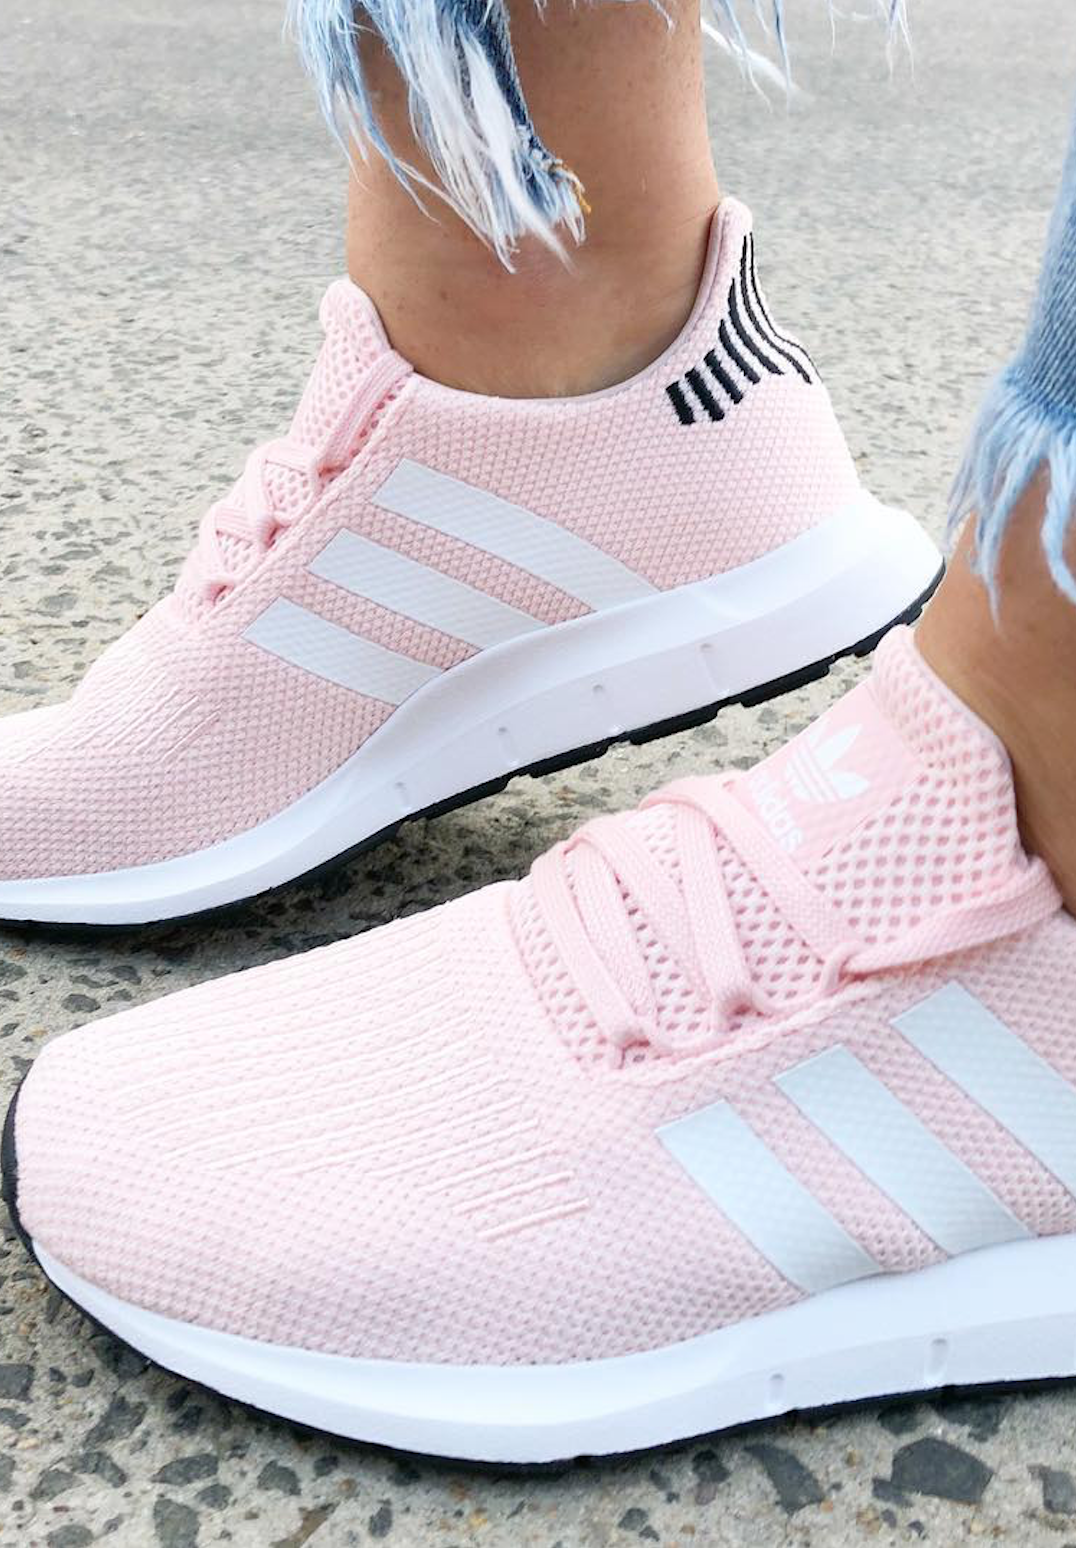 sale retailer 9c5a7 9b5ba adidas Swift Run Sneakers in Icy Pink. Seriously stylish shoes 2018.